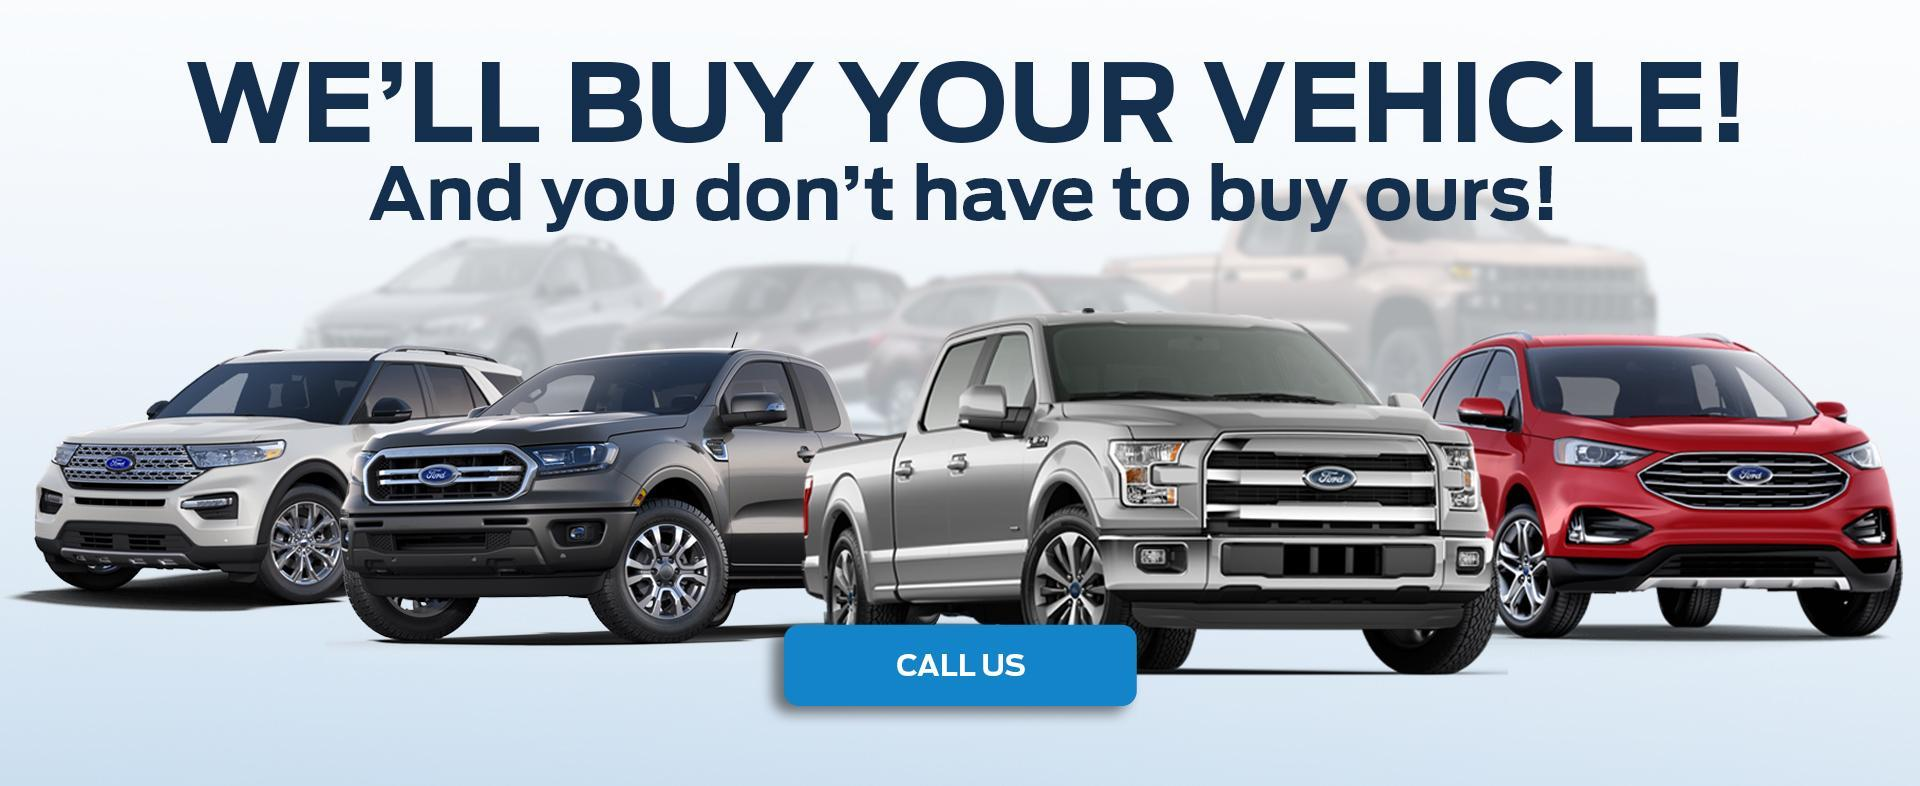 Used Ford Vehicles